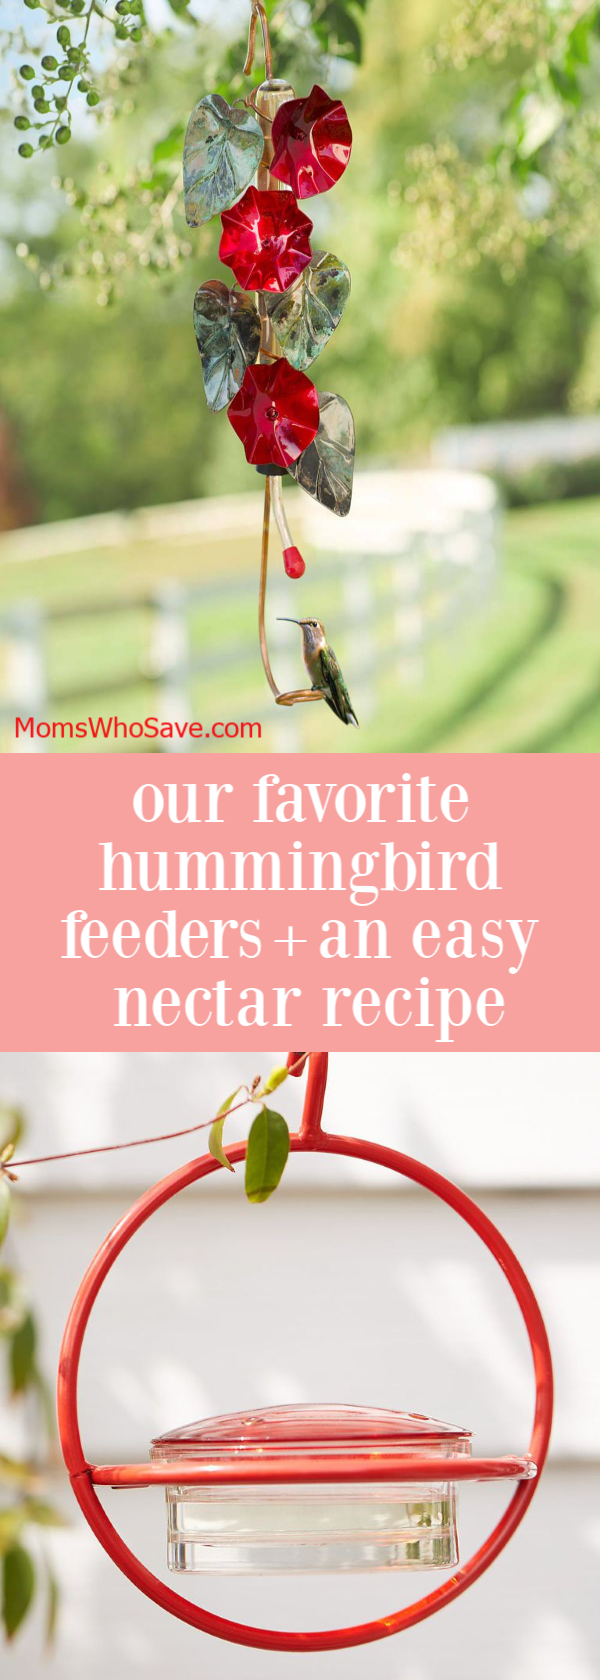 favorite hummingbird feeders